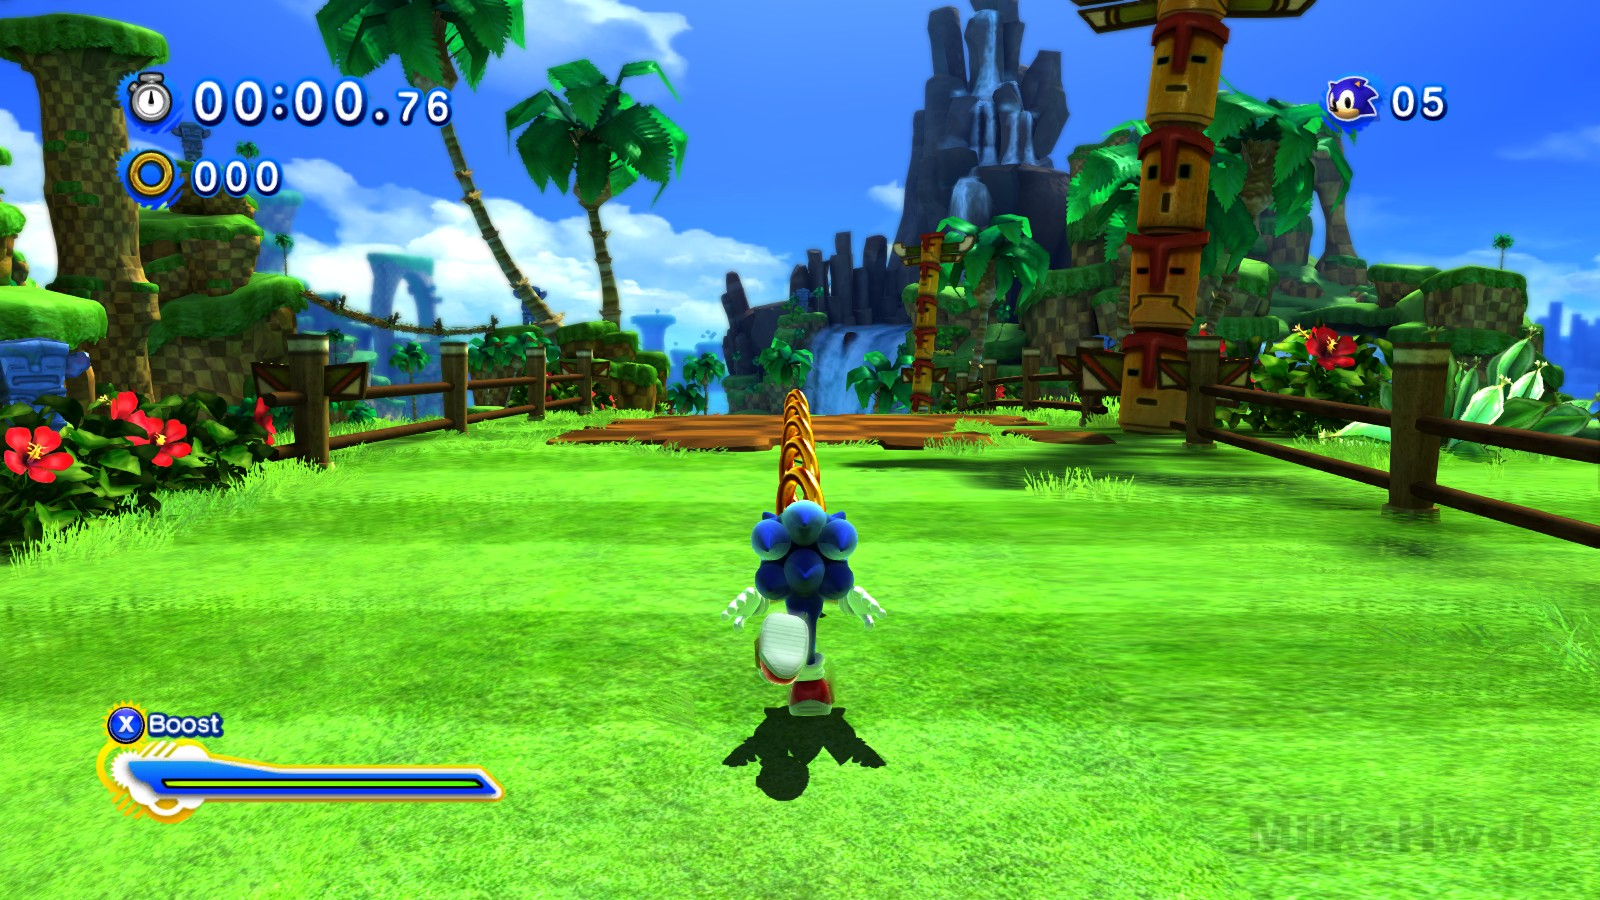 Sonic generations full game free pc download play sonic generations